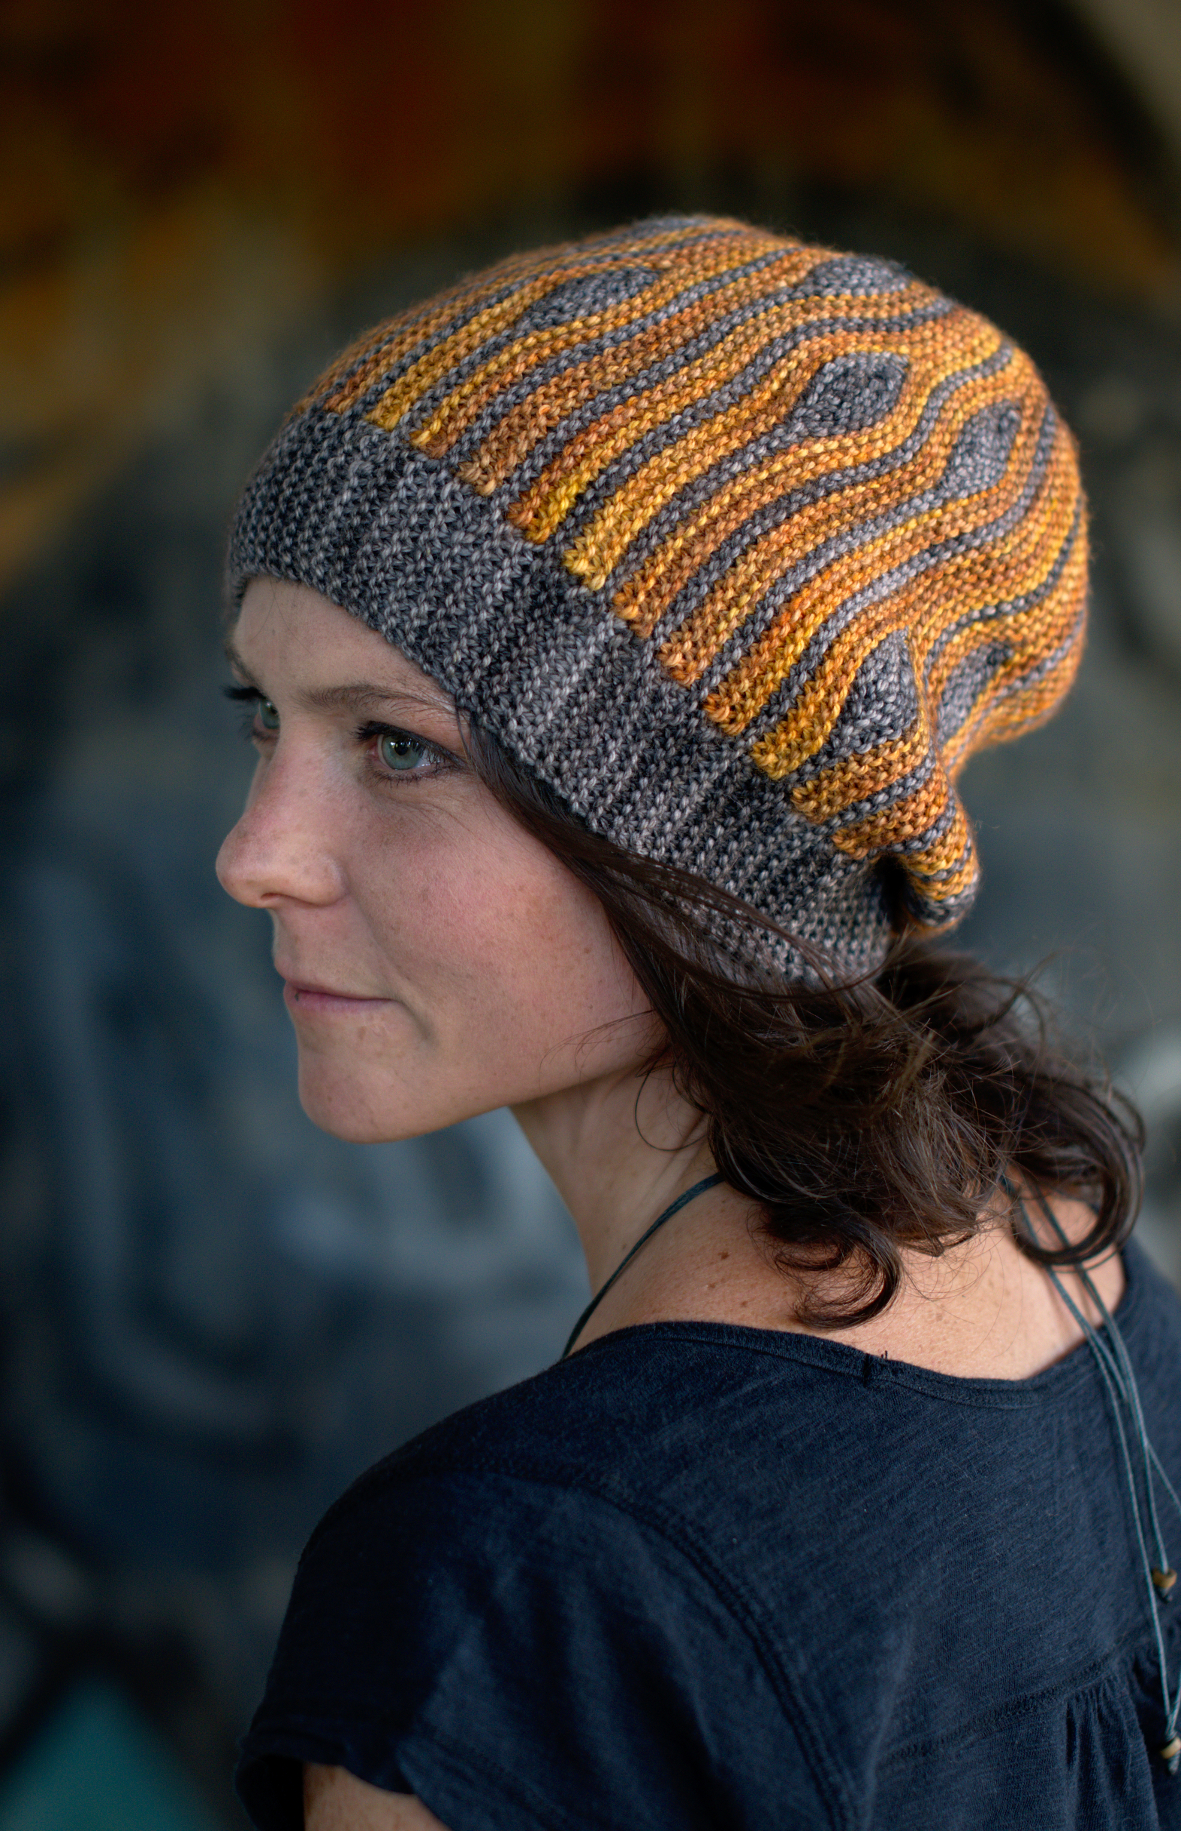 Korra sideways knit short row colourwork Hat knitting pattern